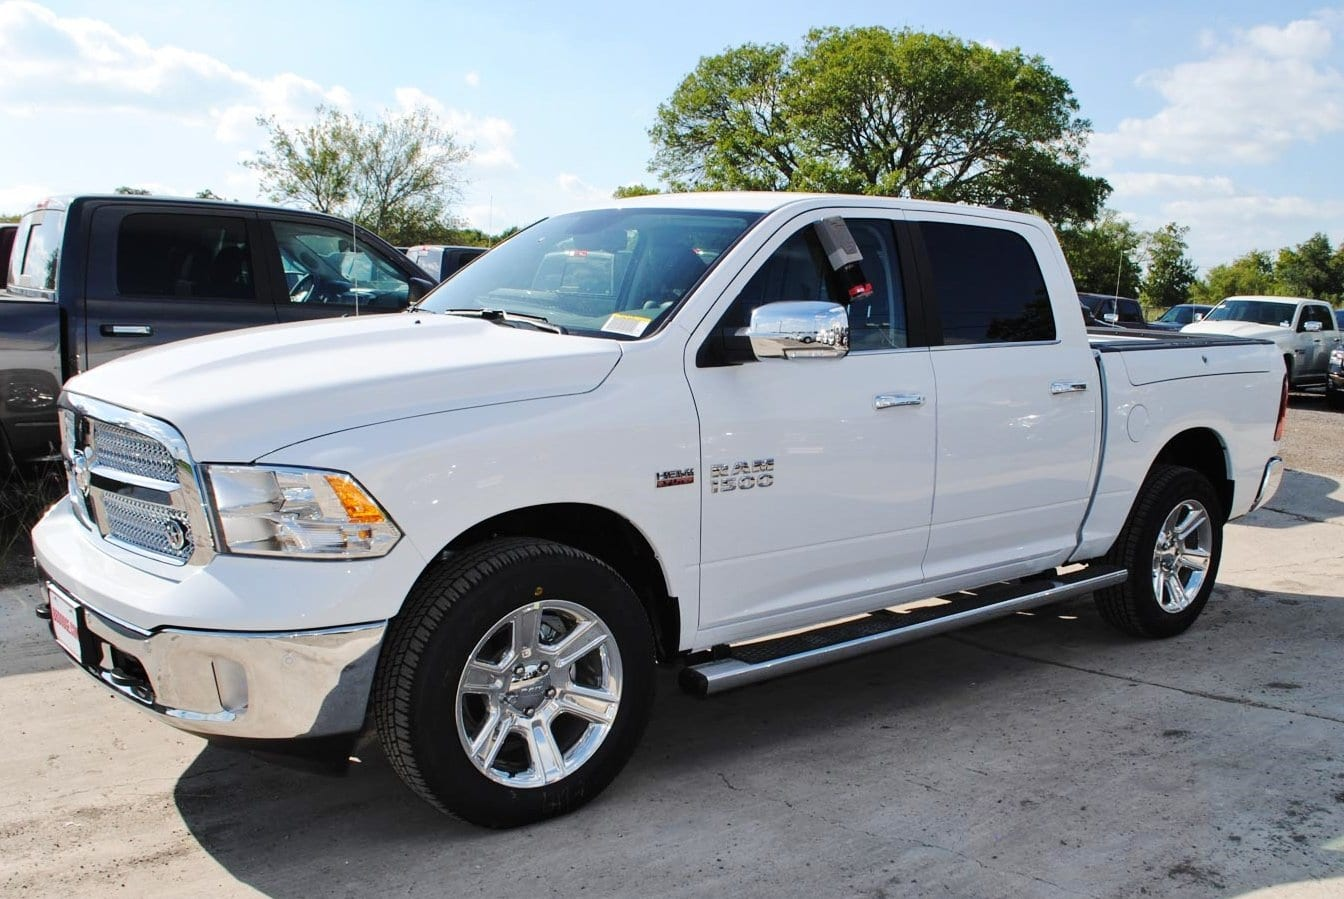 2018 Ram 1500 Crew Cab 4x4, Pickup #TS122173 - photo 3